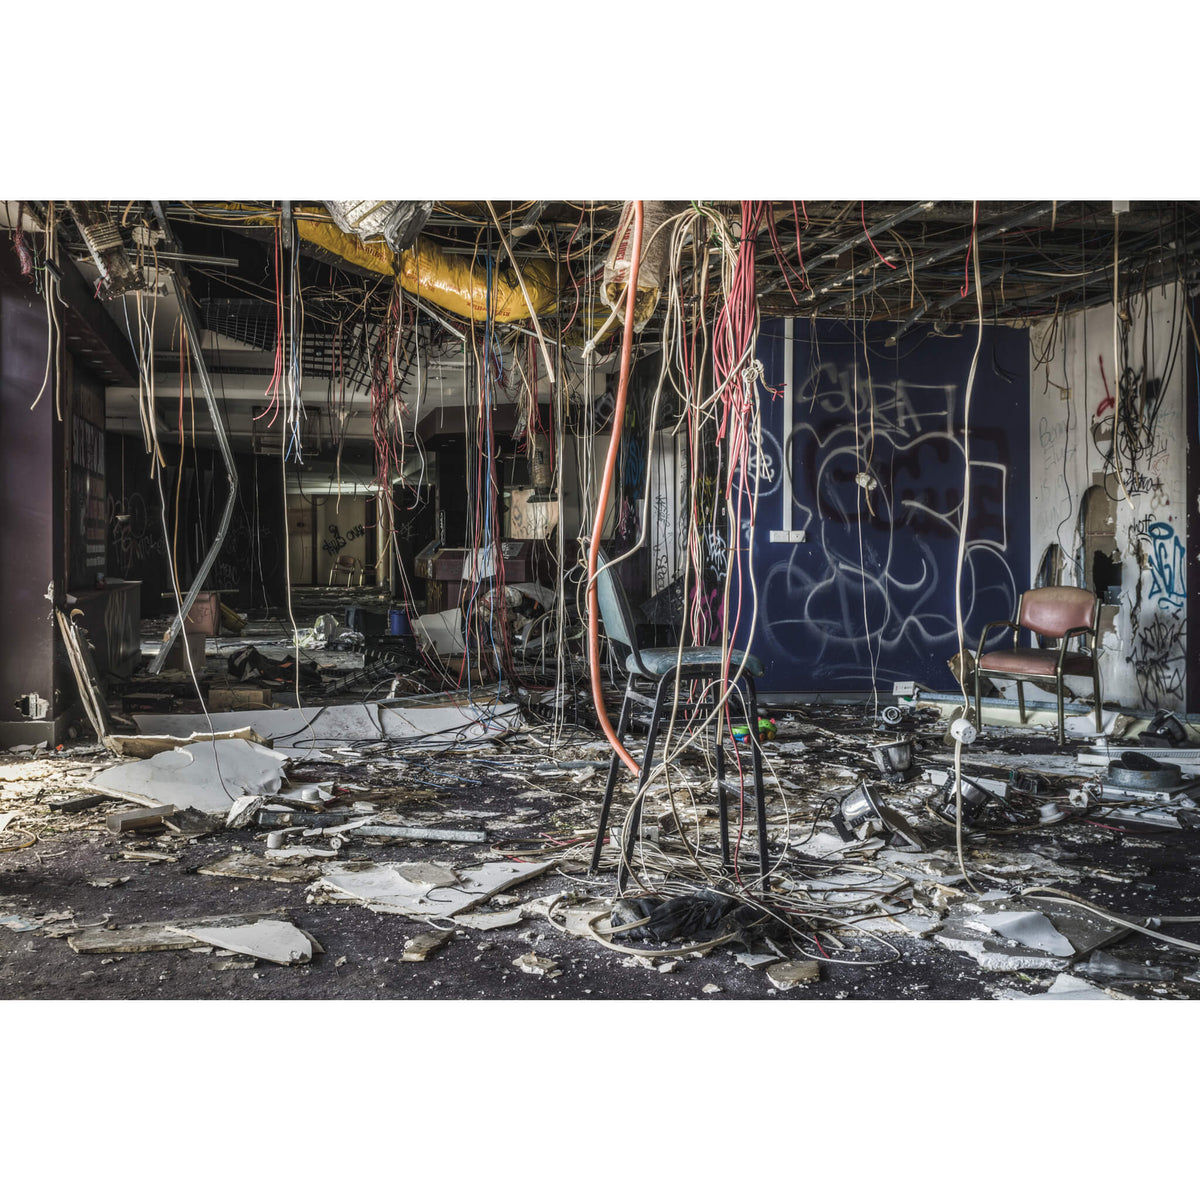 Stripped Cables | Balmain Leagues Club Fine Art Print - Lost Collective Shop